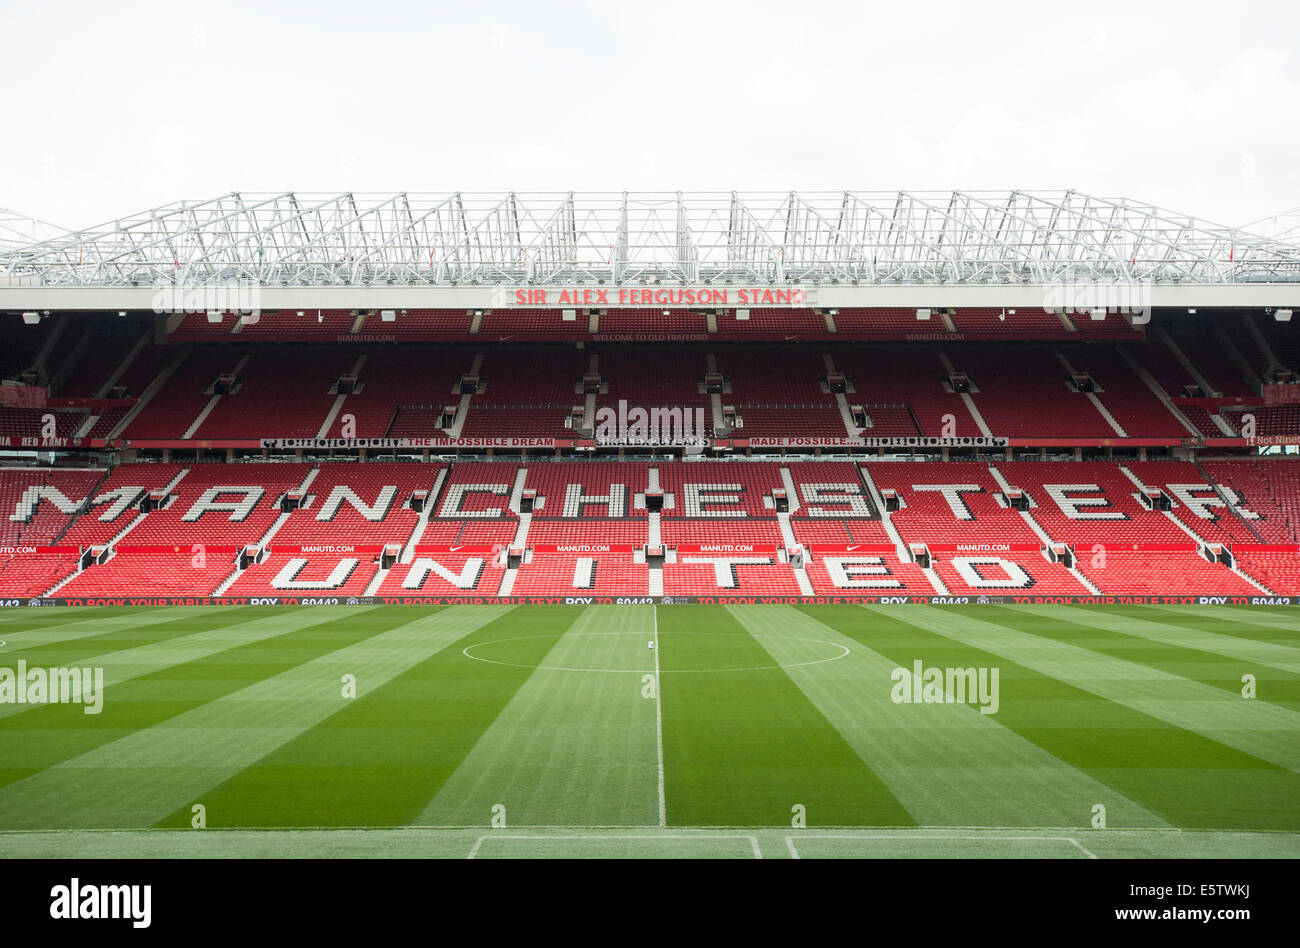 Old Trafford. Manchester United Football Club. - Stock Image